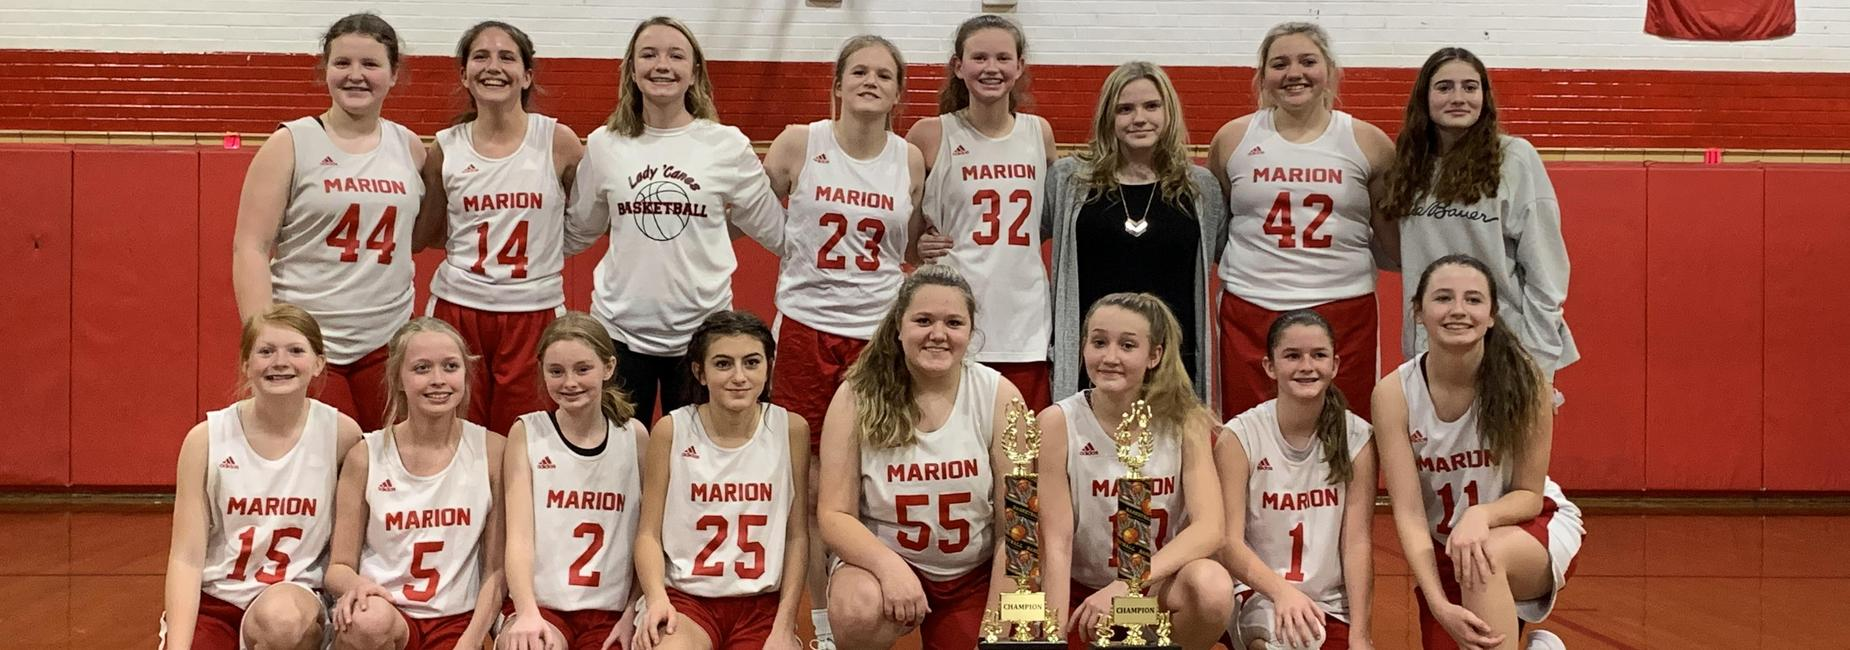 MMS Girl's Basketball team 2021-Highland's Conference Champions